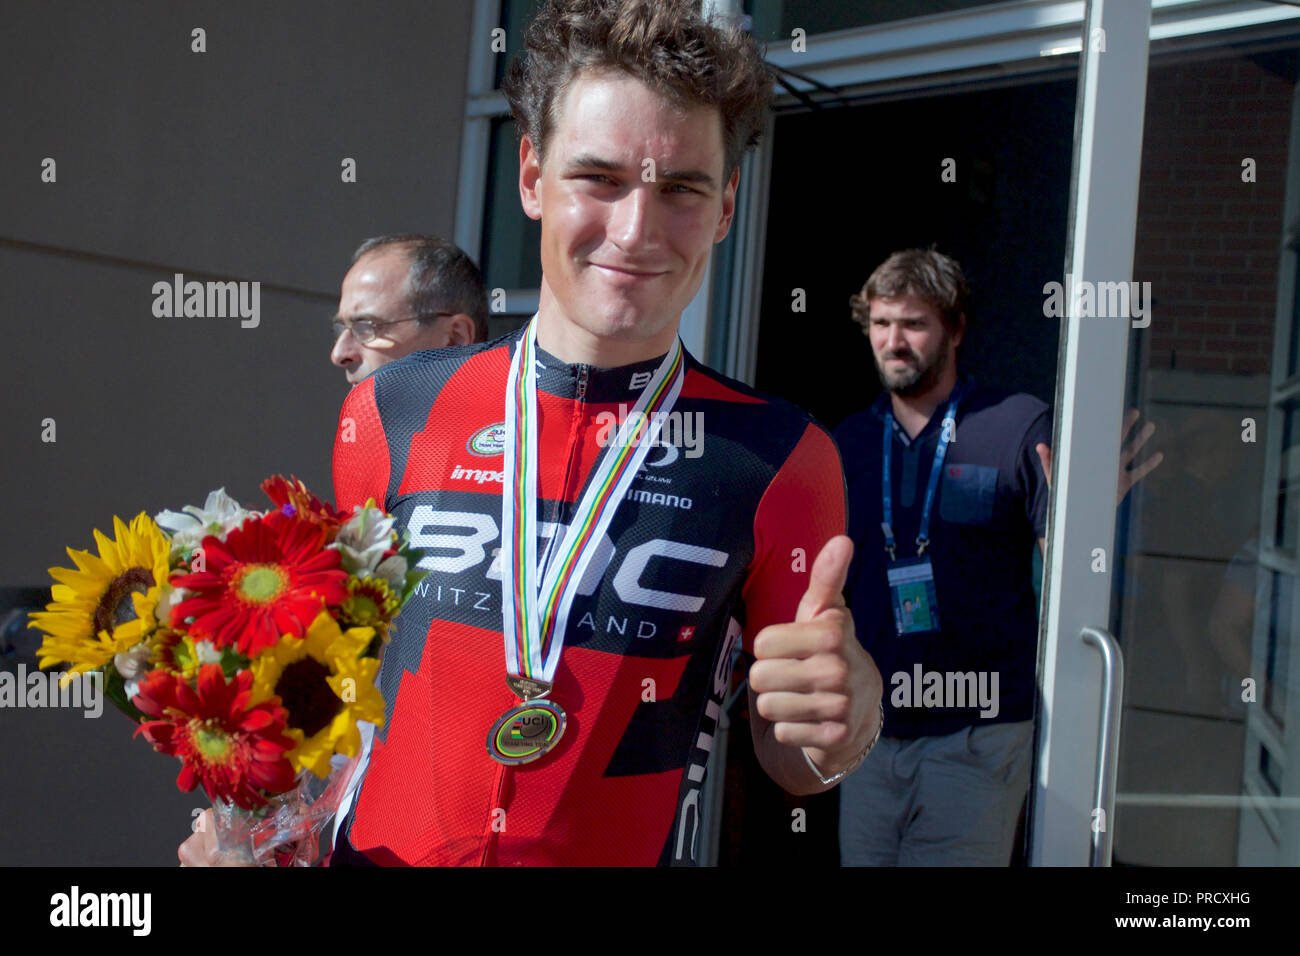 World Championship Cycling in Richmond, Virginia 2015 - Stock Image